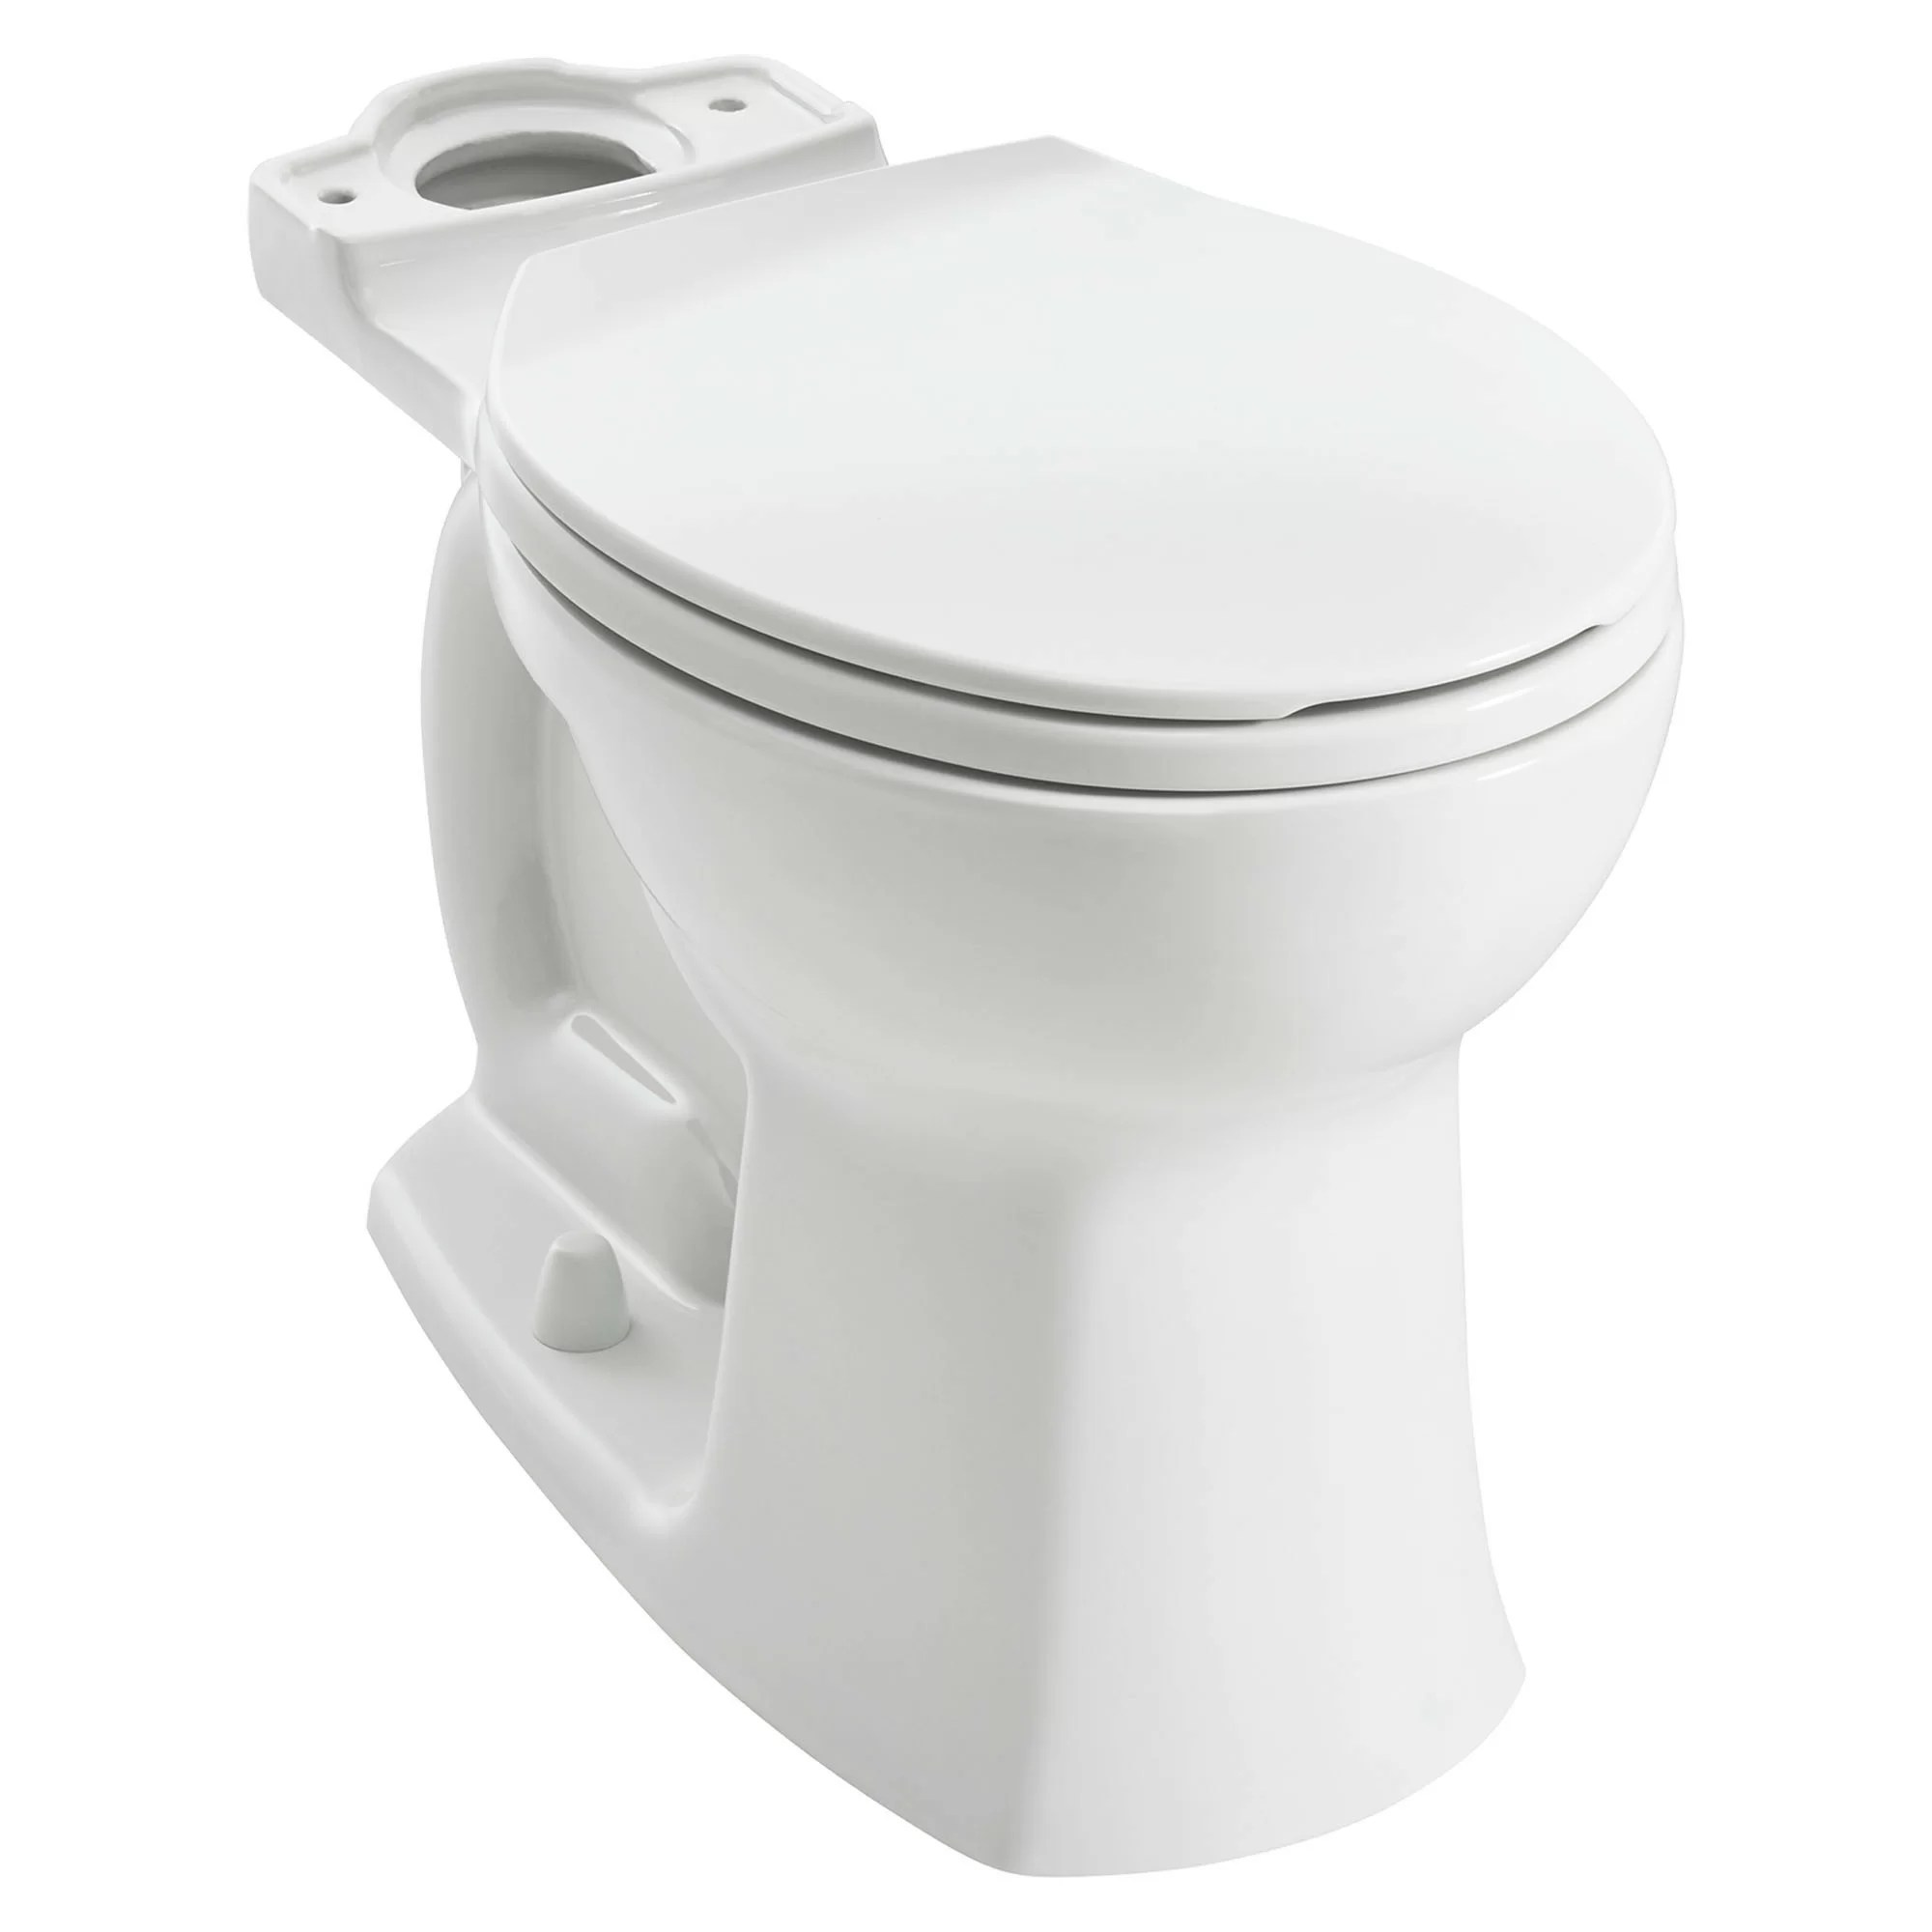 10 Inch Rough In Toilet Canada Edgemere Dual Flush Elongated Toilet Bowl